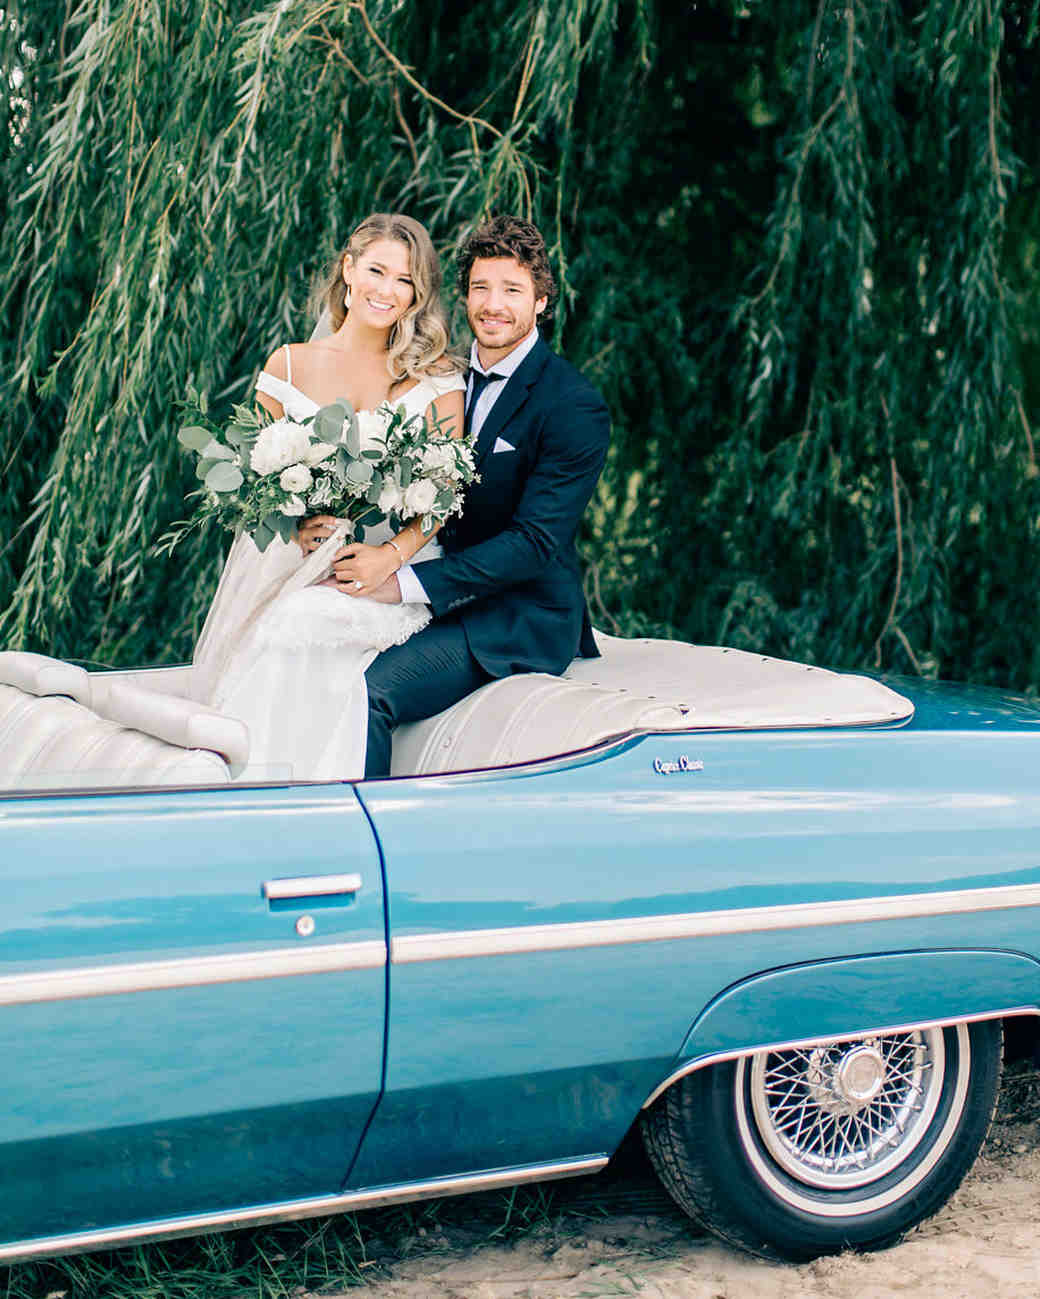 maggie zach wedding couple in vintage car